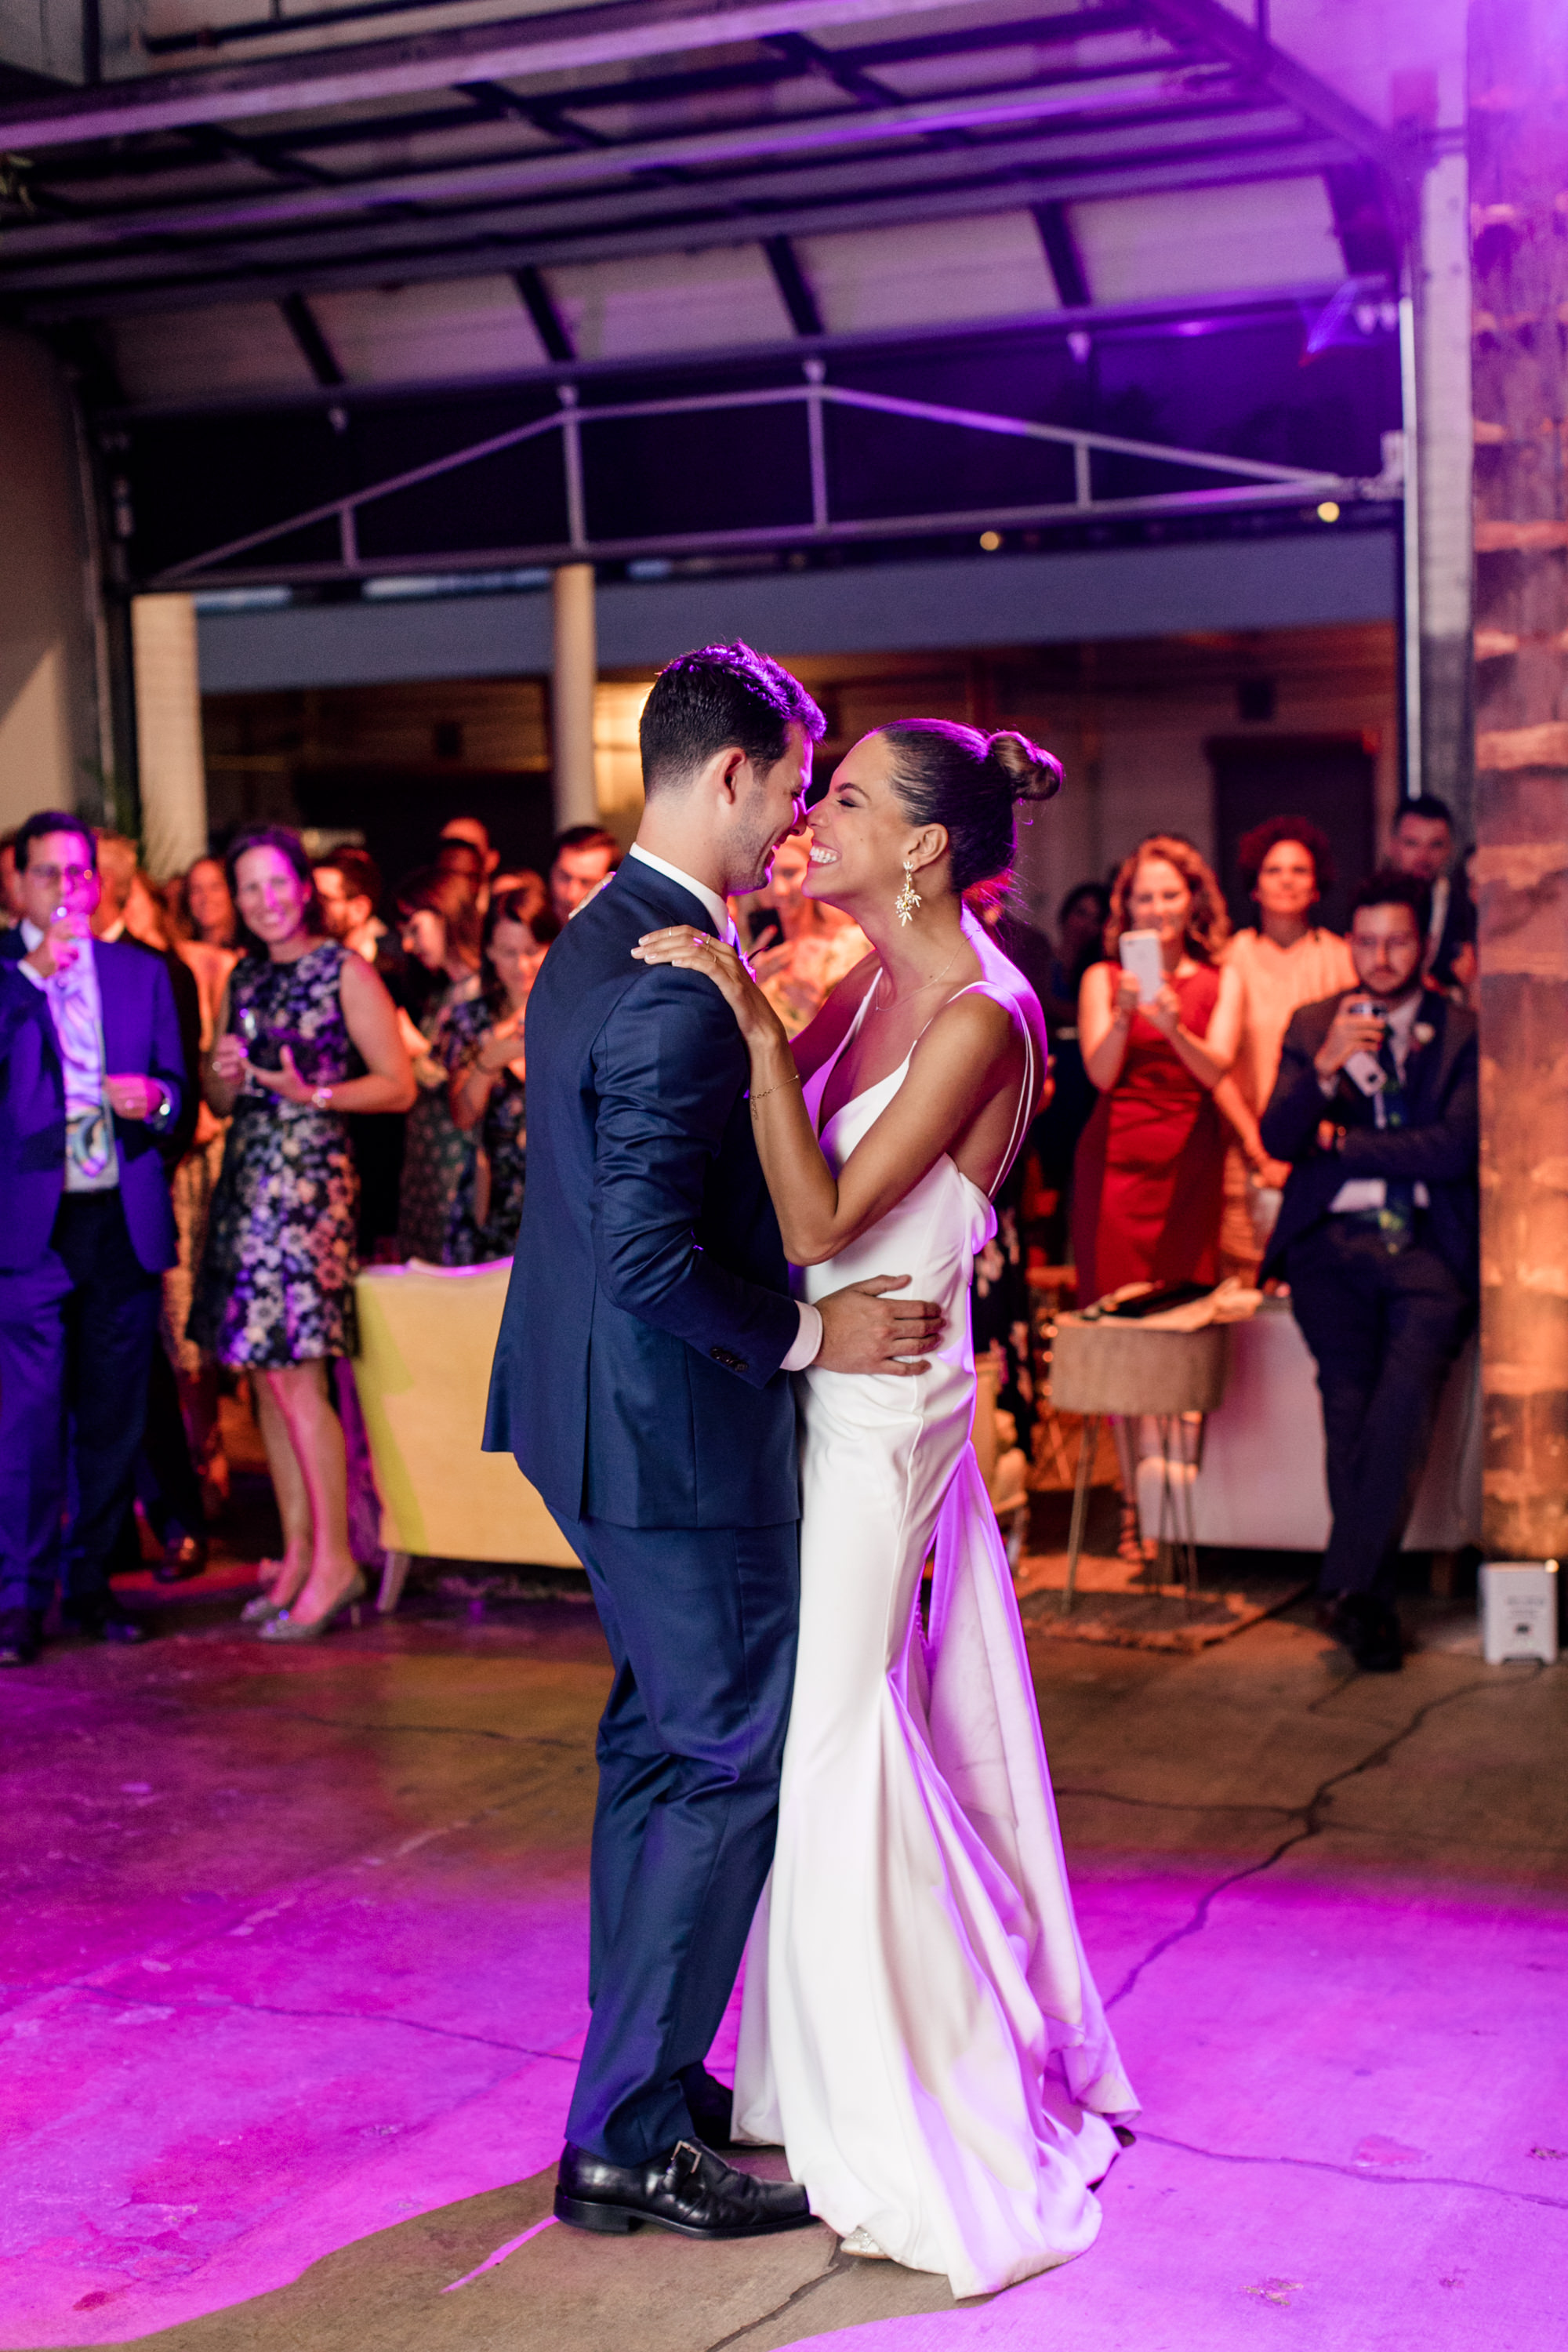 photography-wedding-weddings-natural-candid-dock 5 dc-washington dc-philadelphia-mixed race-editorial-modern-fine-art-070.JPG